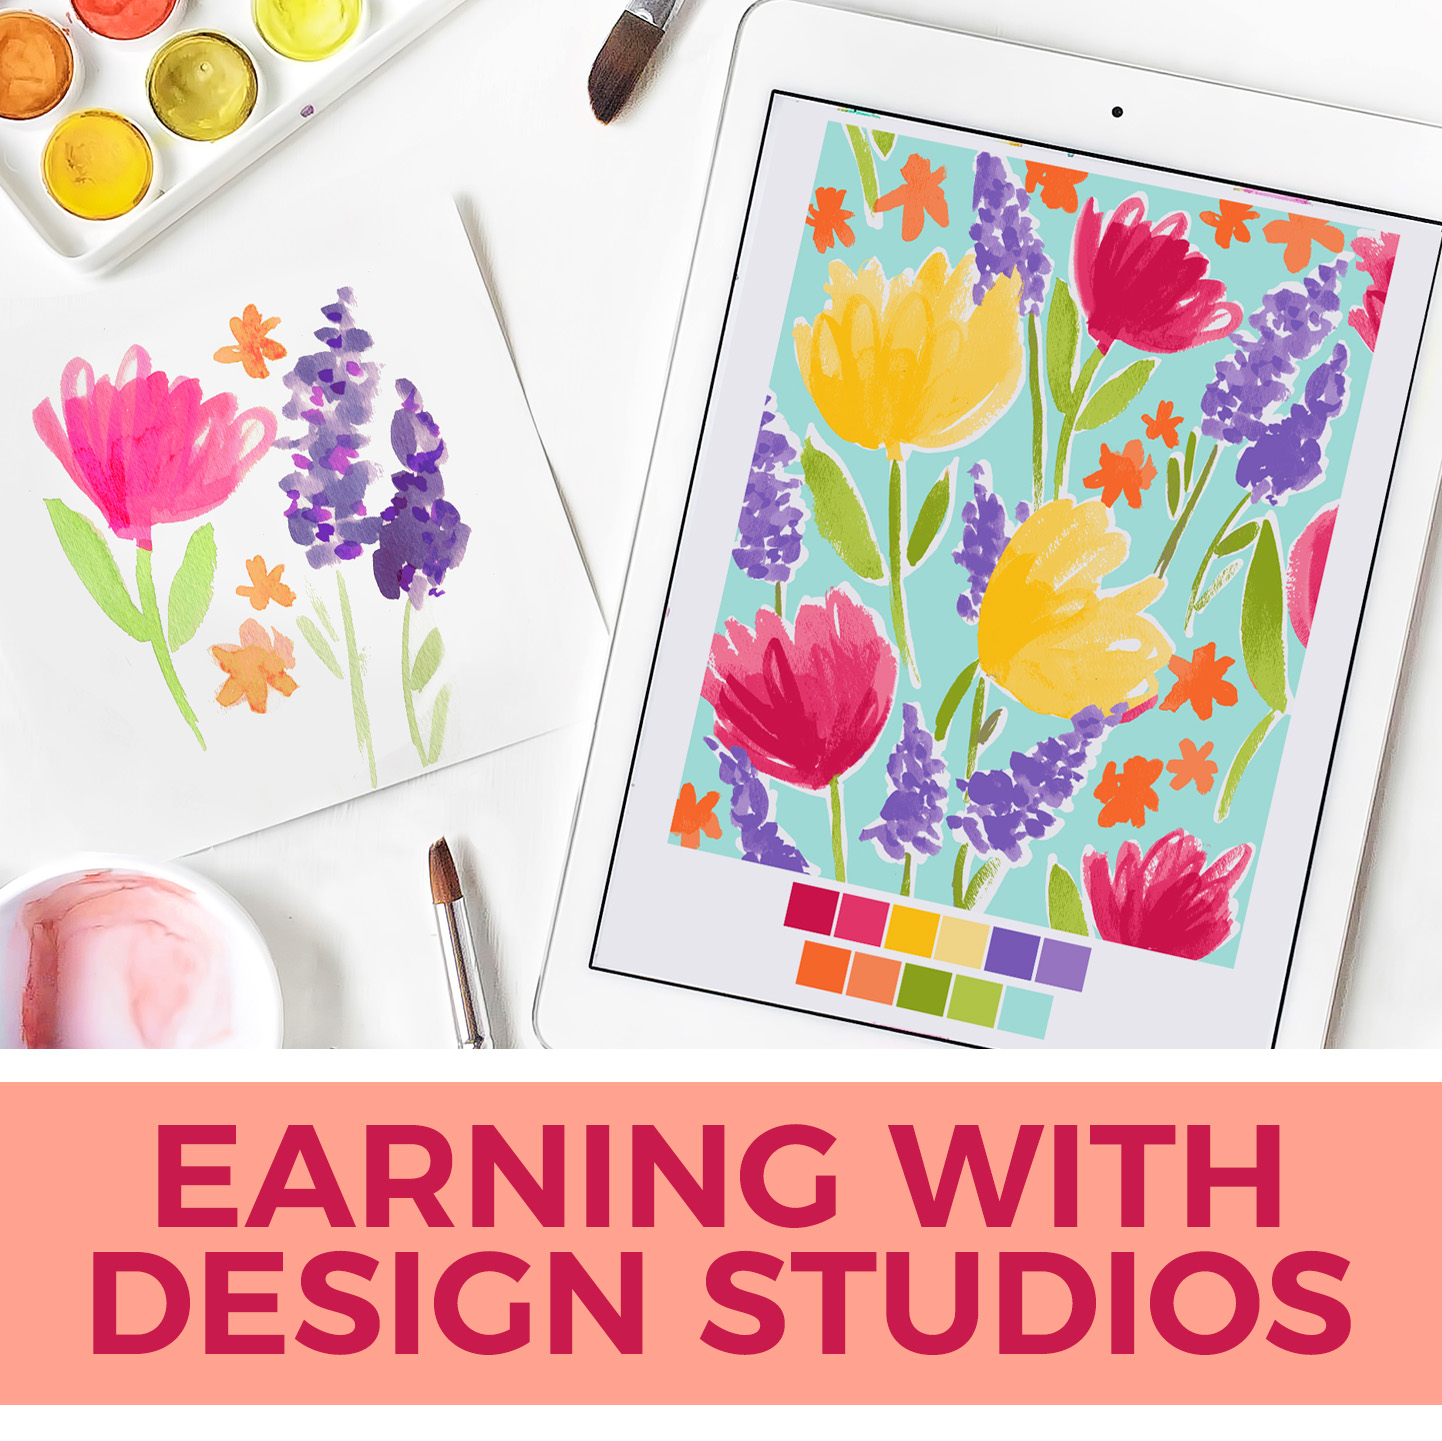 Earning with Design Studios